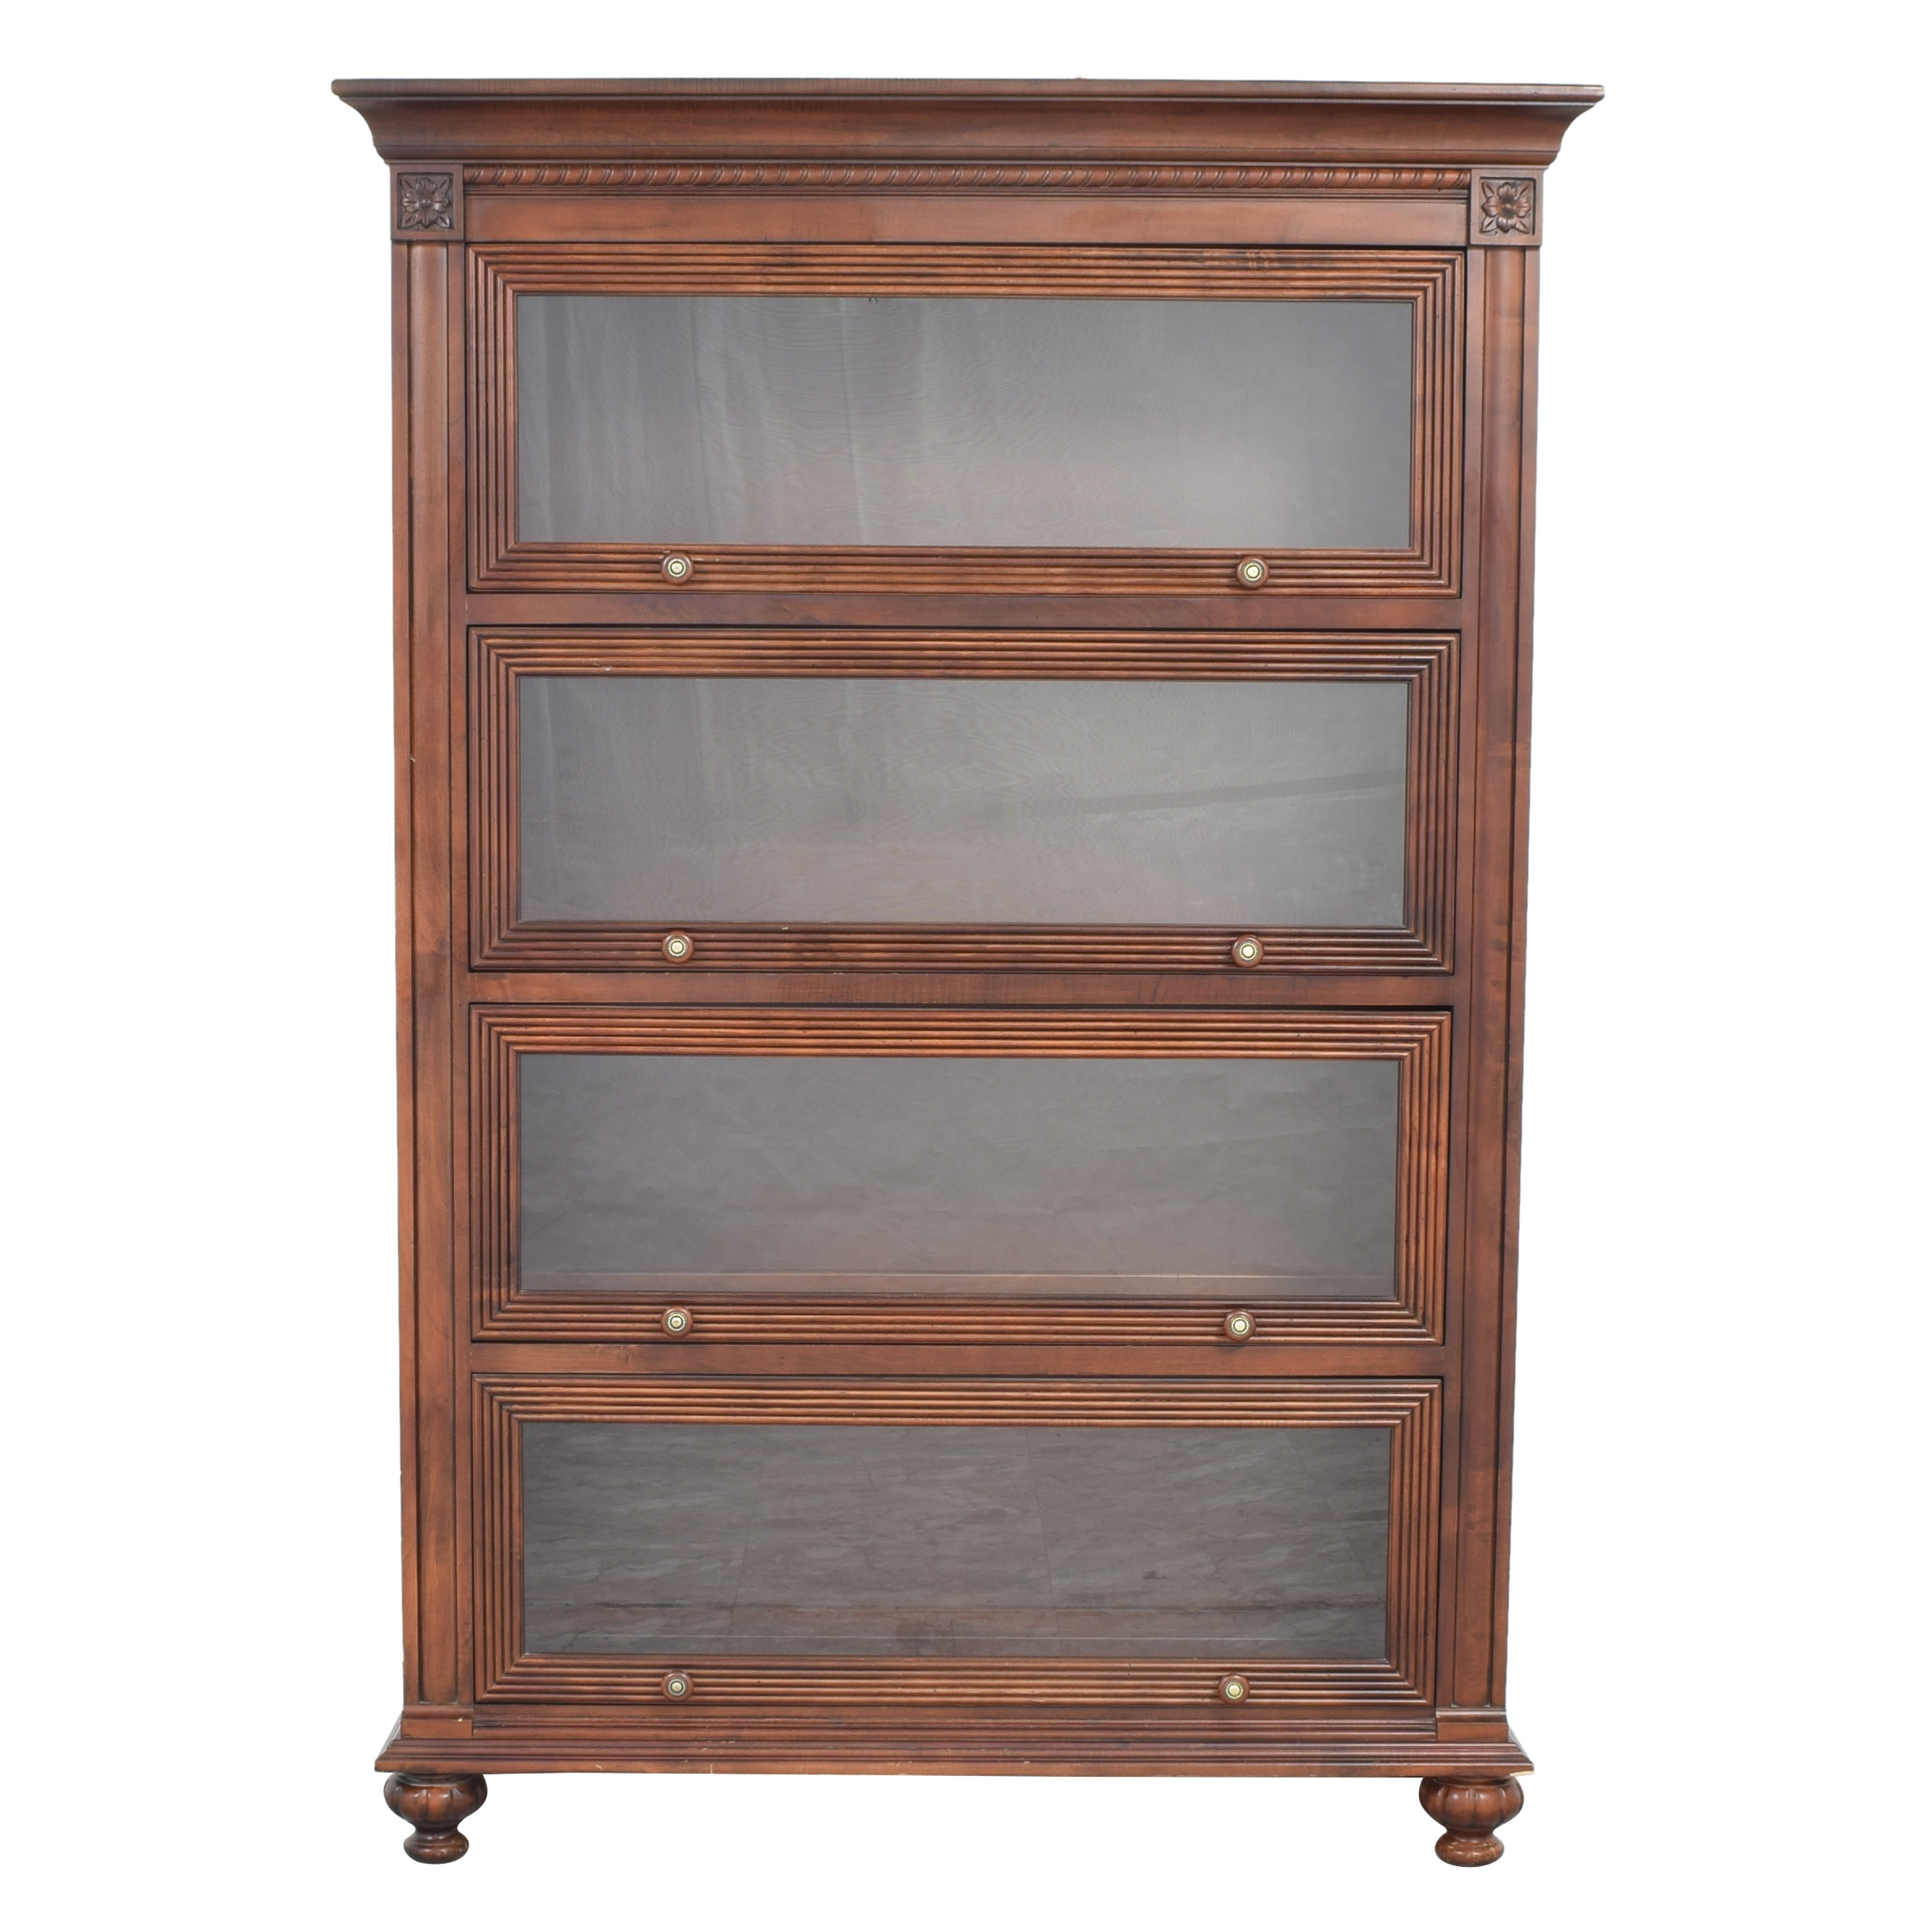 Ethan Allen Ethan Allen British Classics Barrister Bookcase on sale